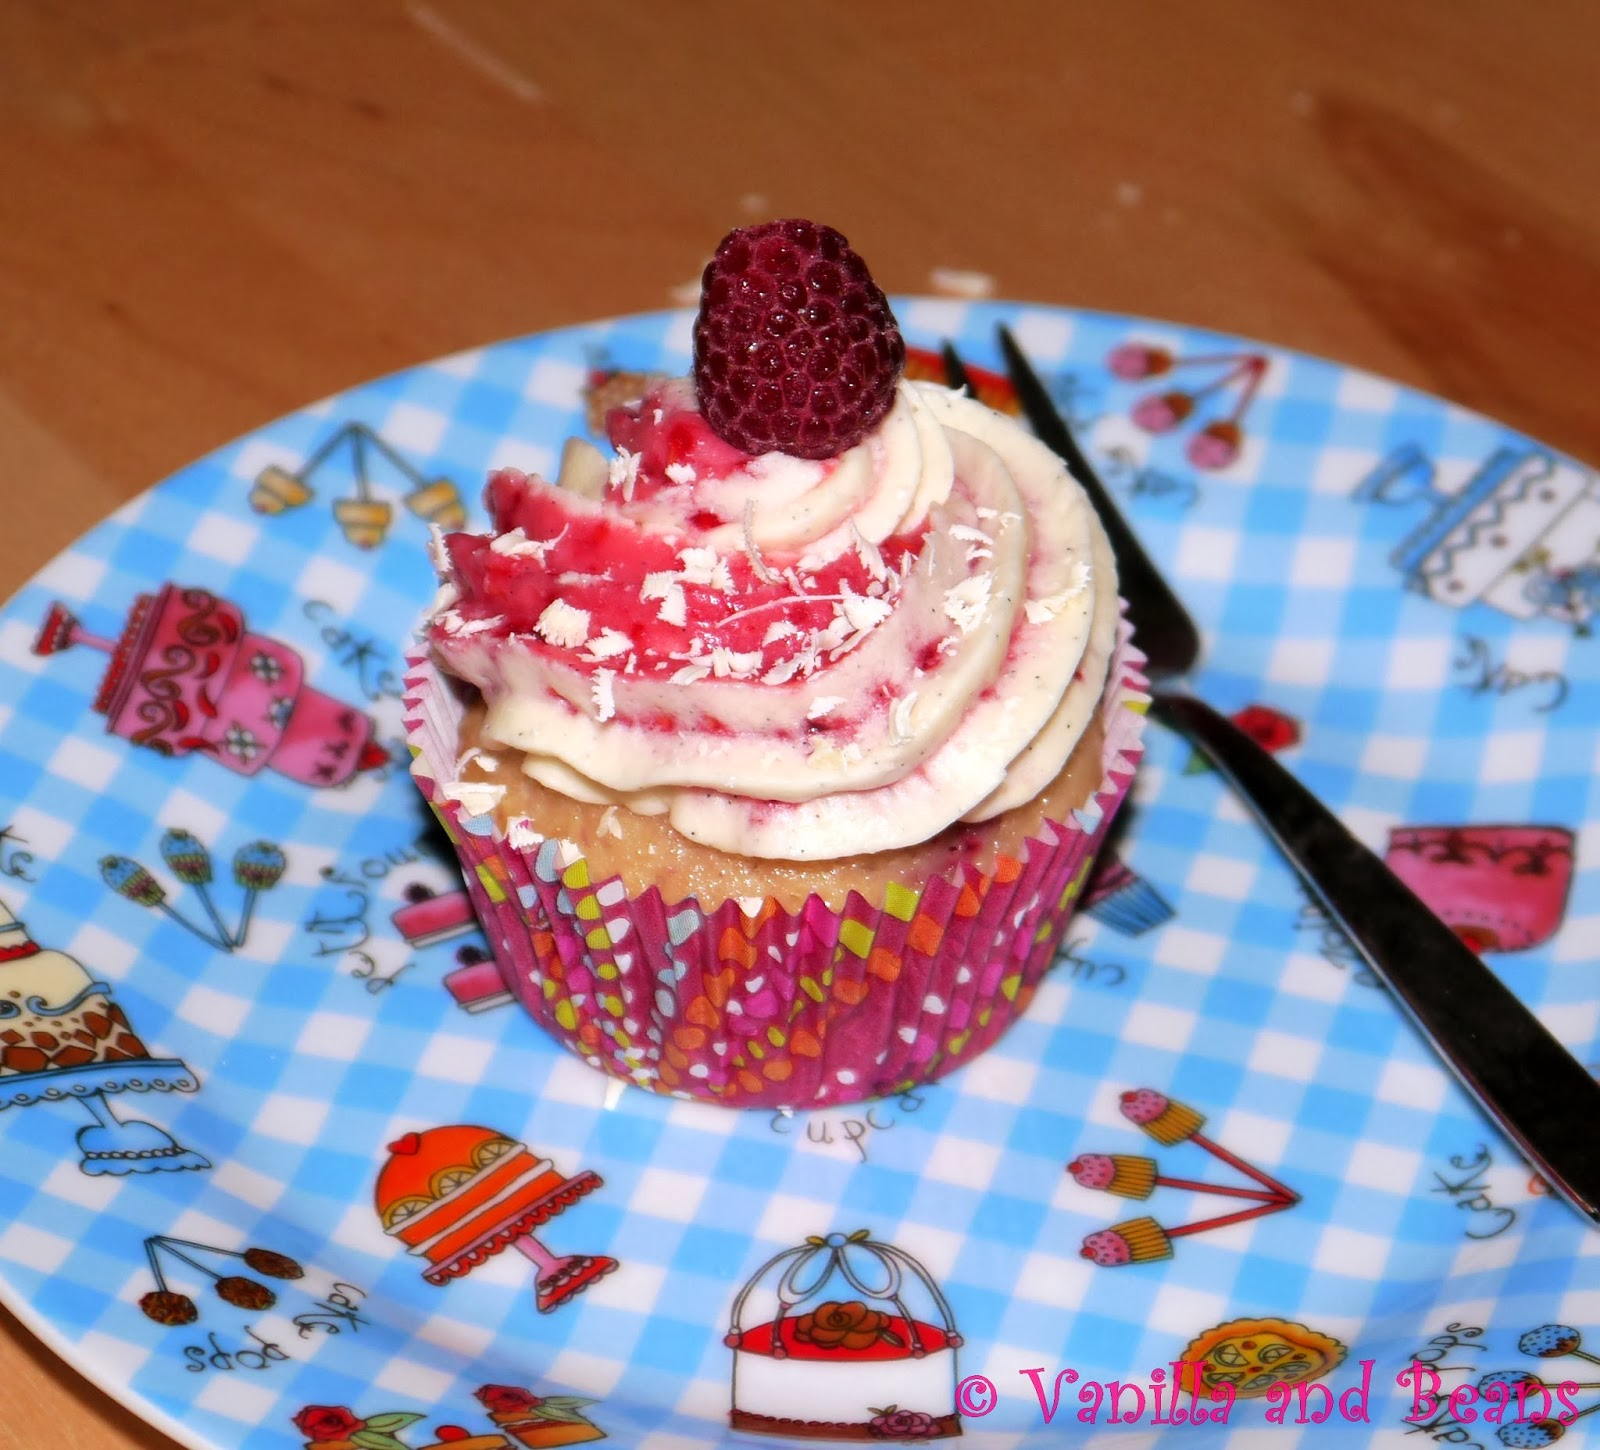 Himbeer-Vanille-Cupcakes